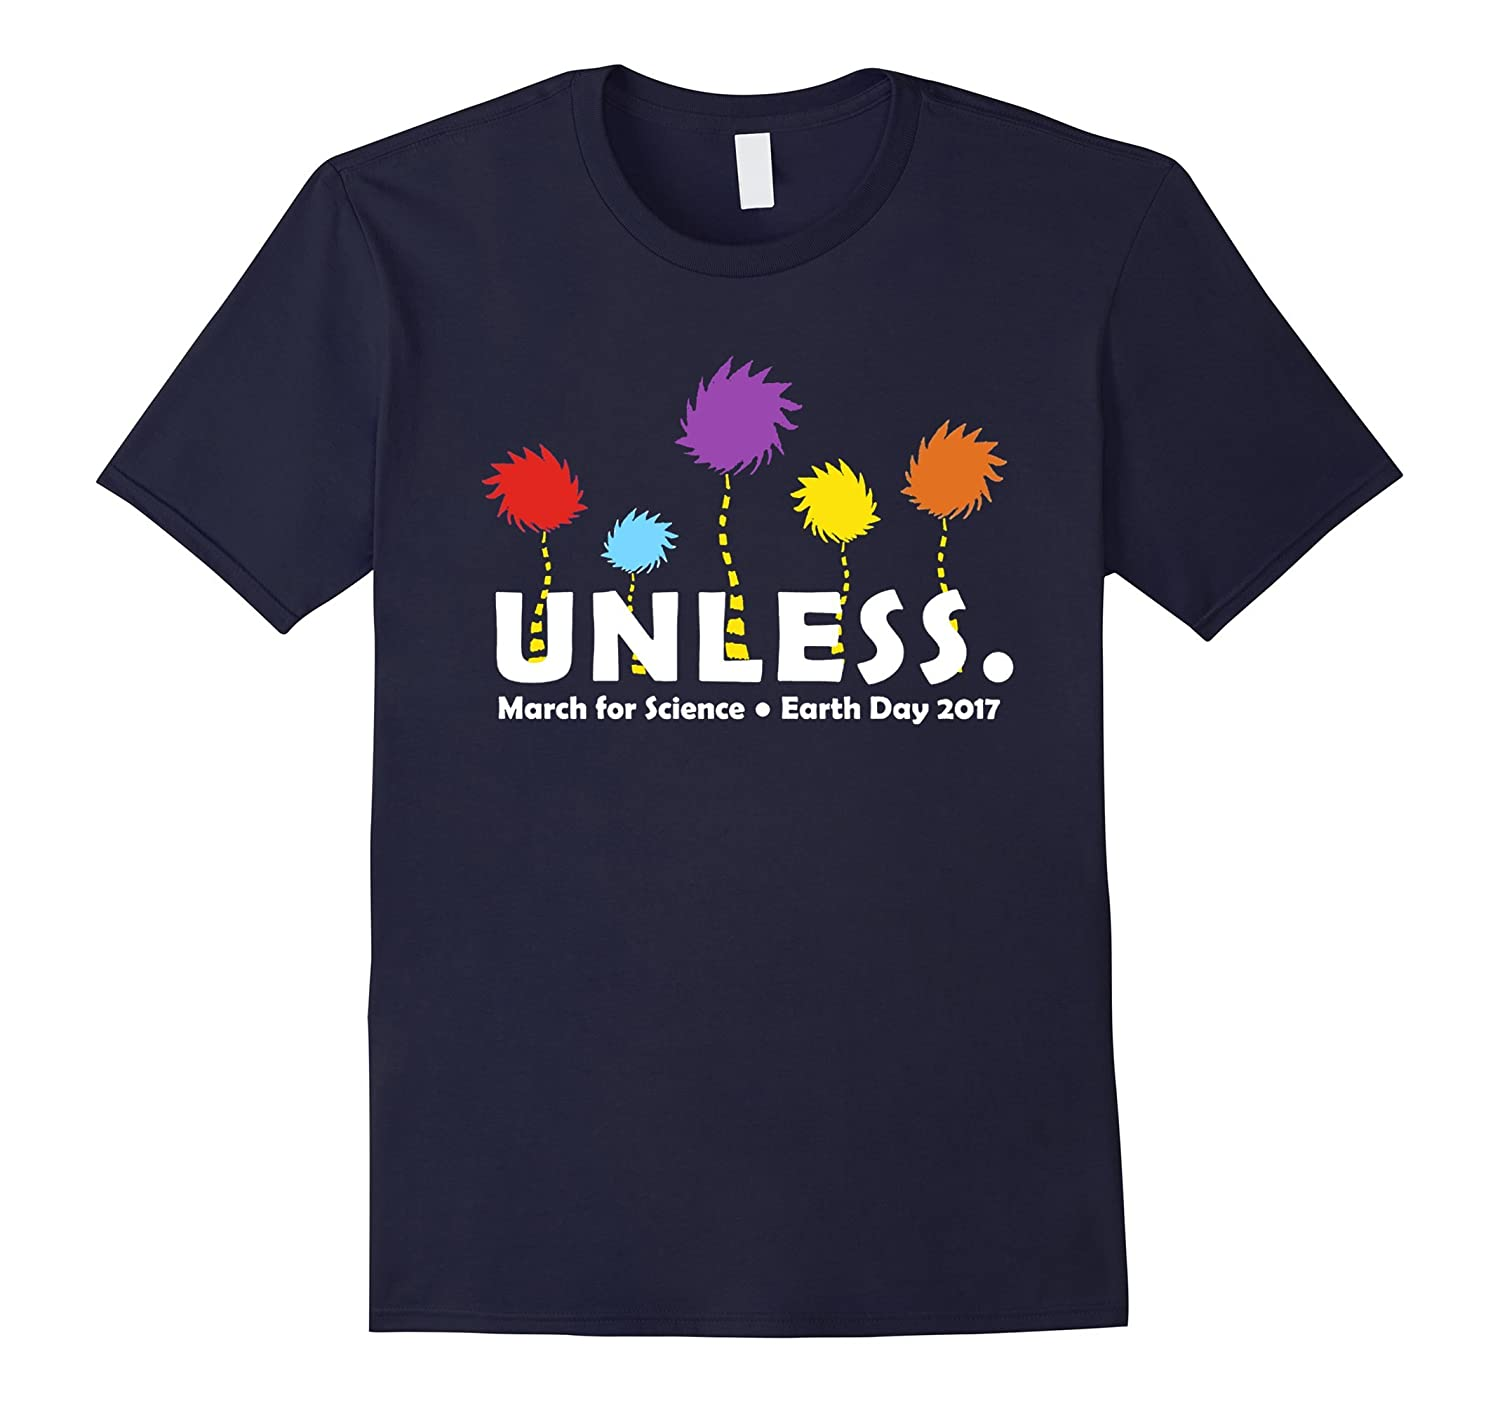 Womens Cool Unless March for Science Earth Day 2017 T Shirt-TH